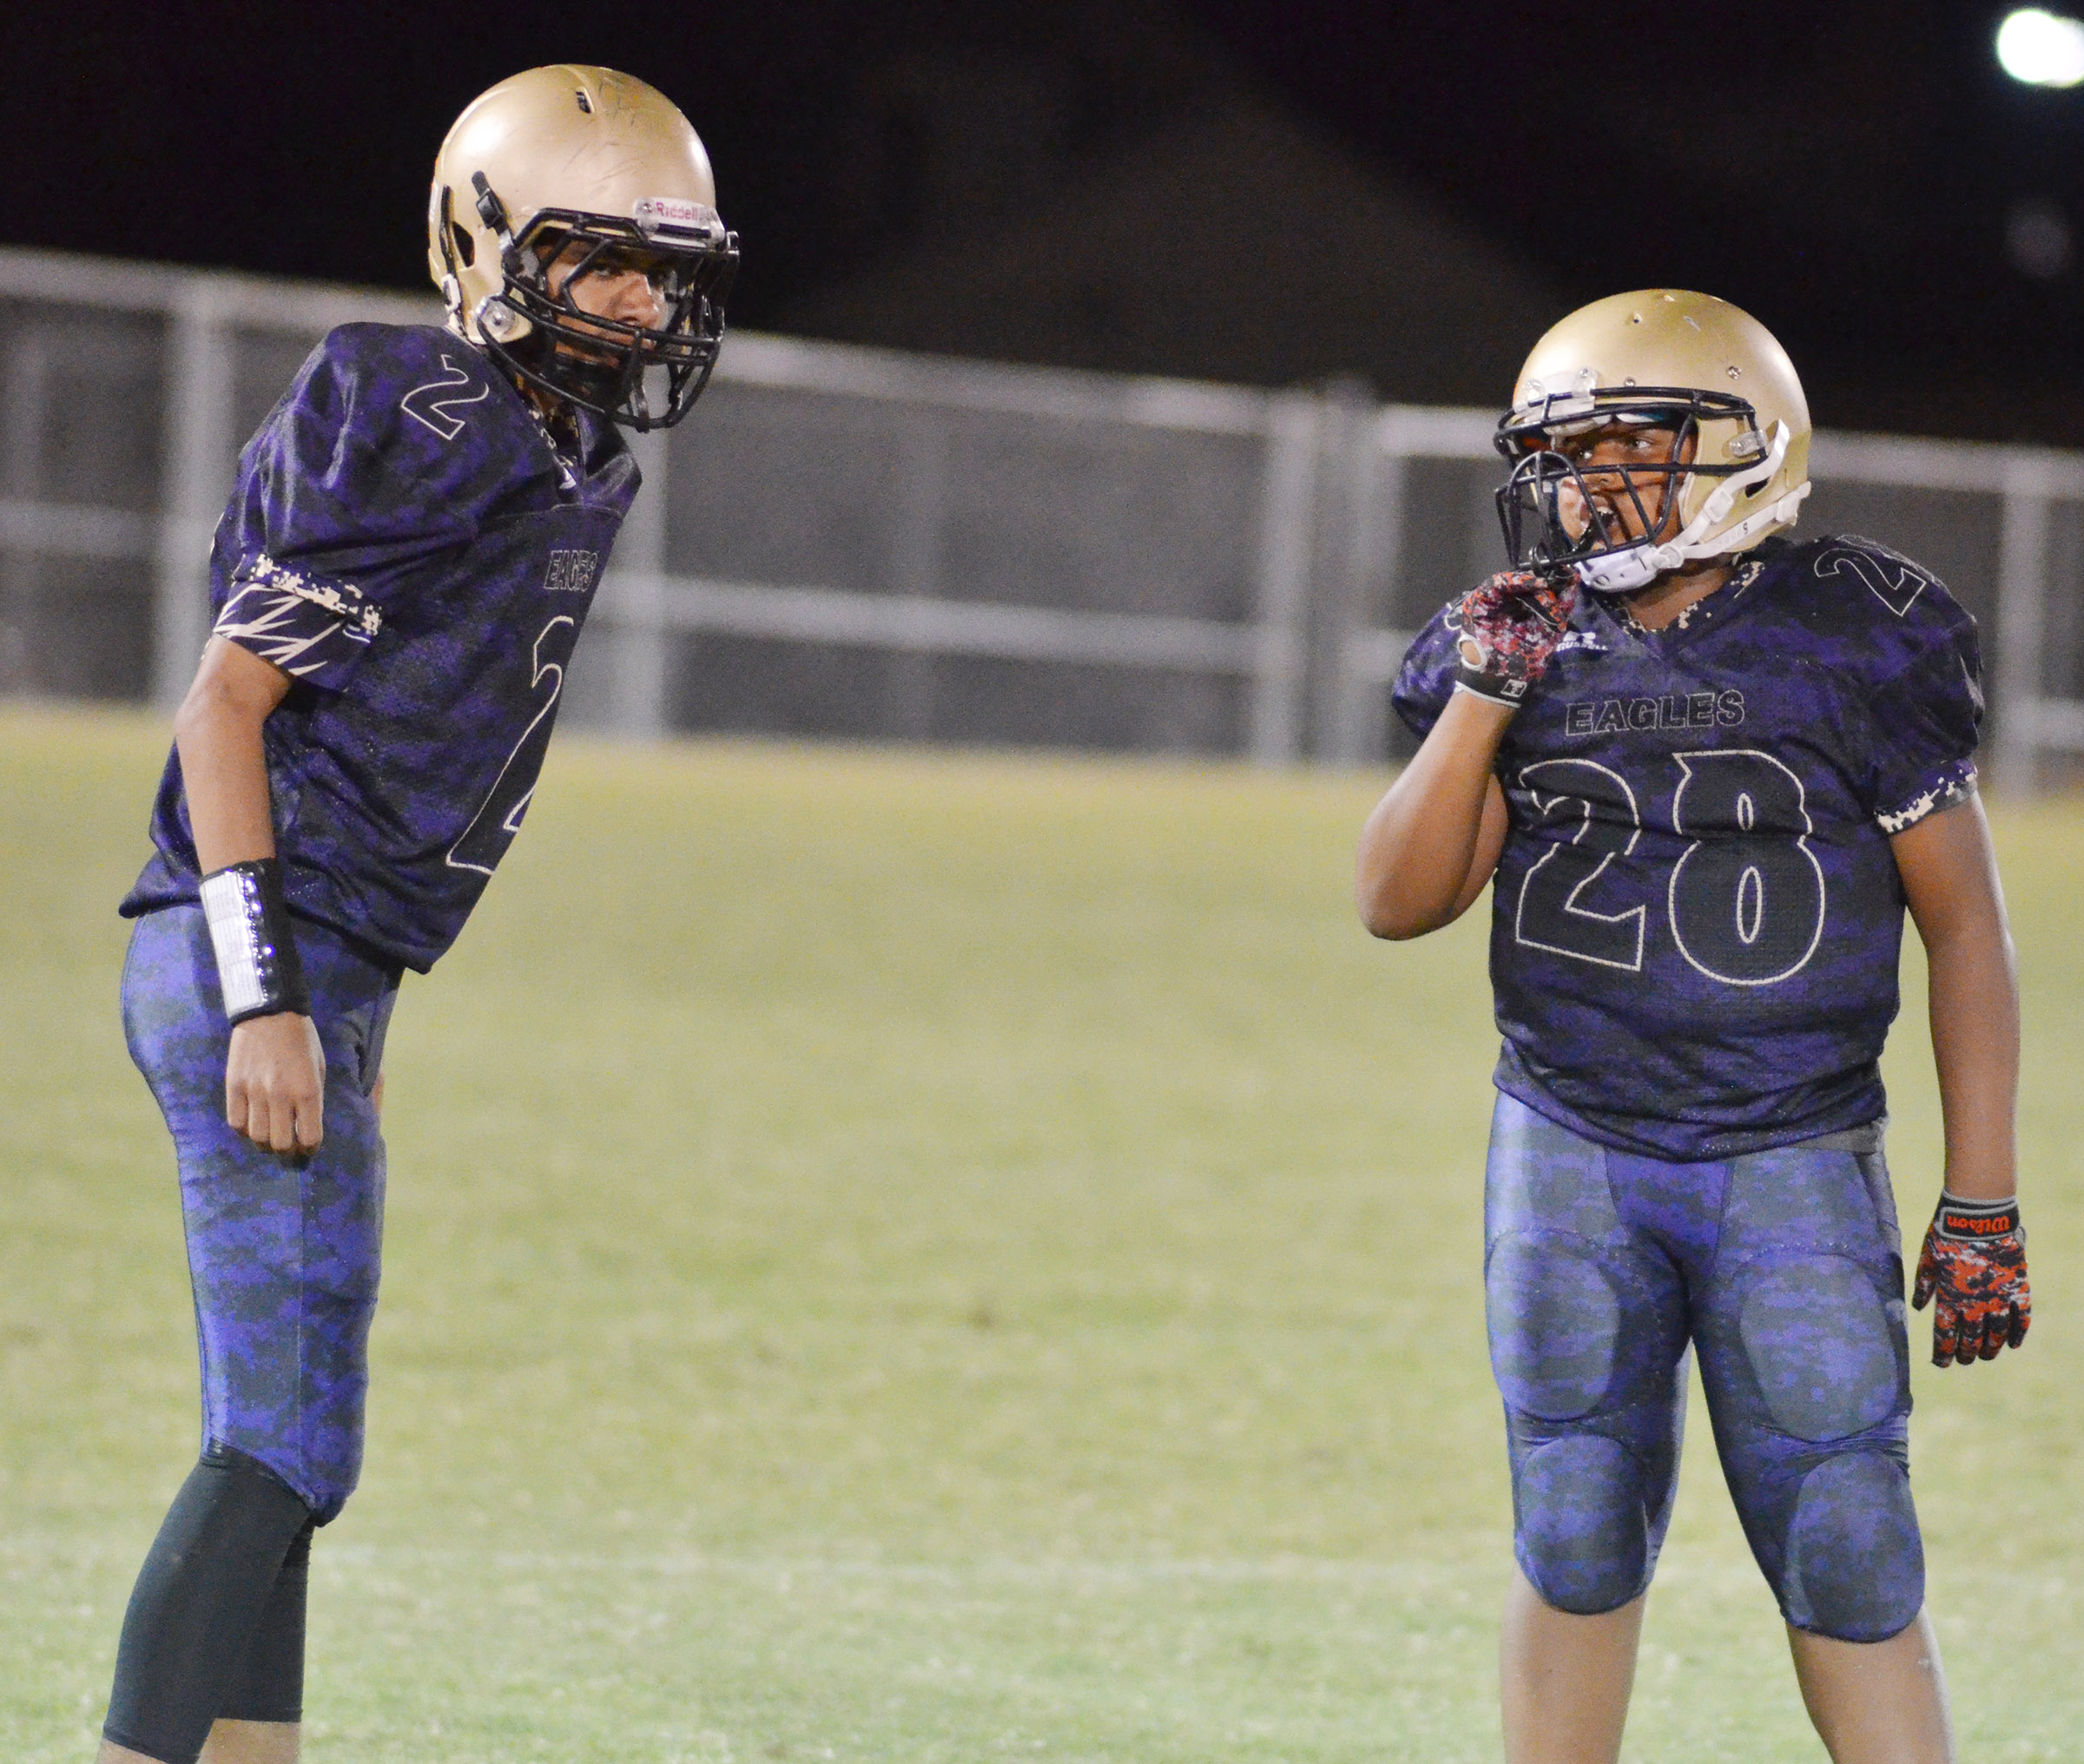 CMS eighth-grader Adrien Smith, at left, and seventh-grader Keondre Weathers talk before a play.